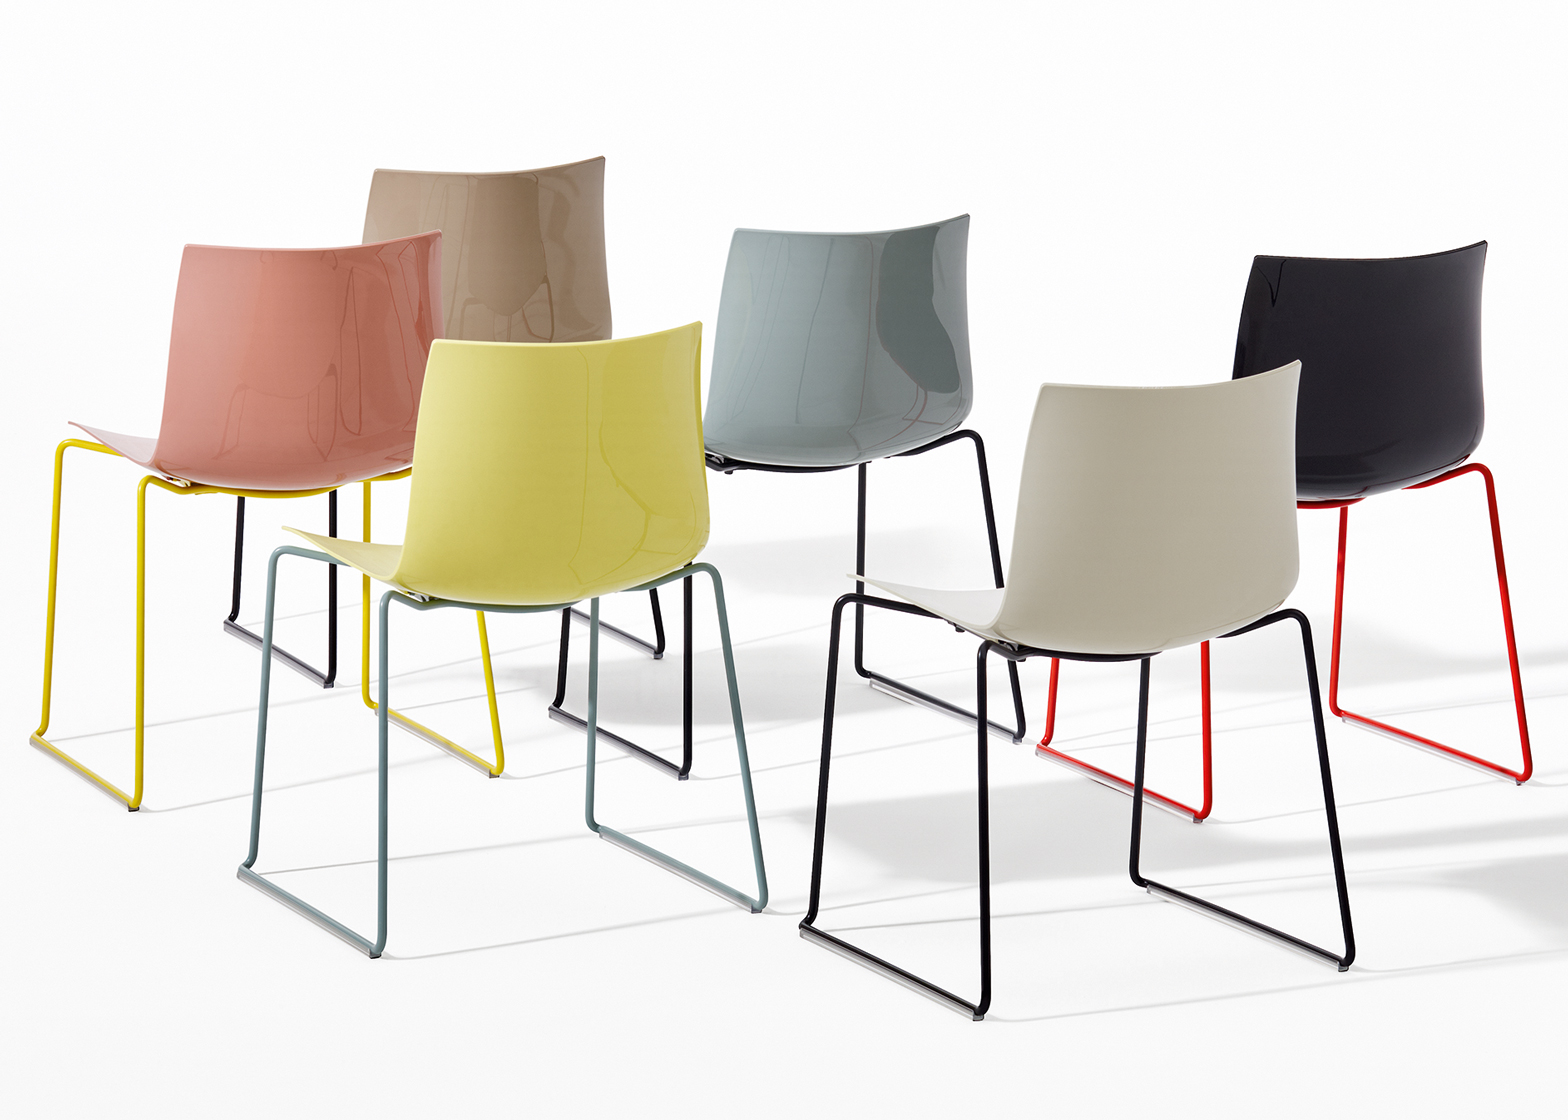 Catifa 46 chairs by Lievore Altherr Molina for Arper